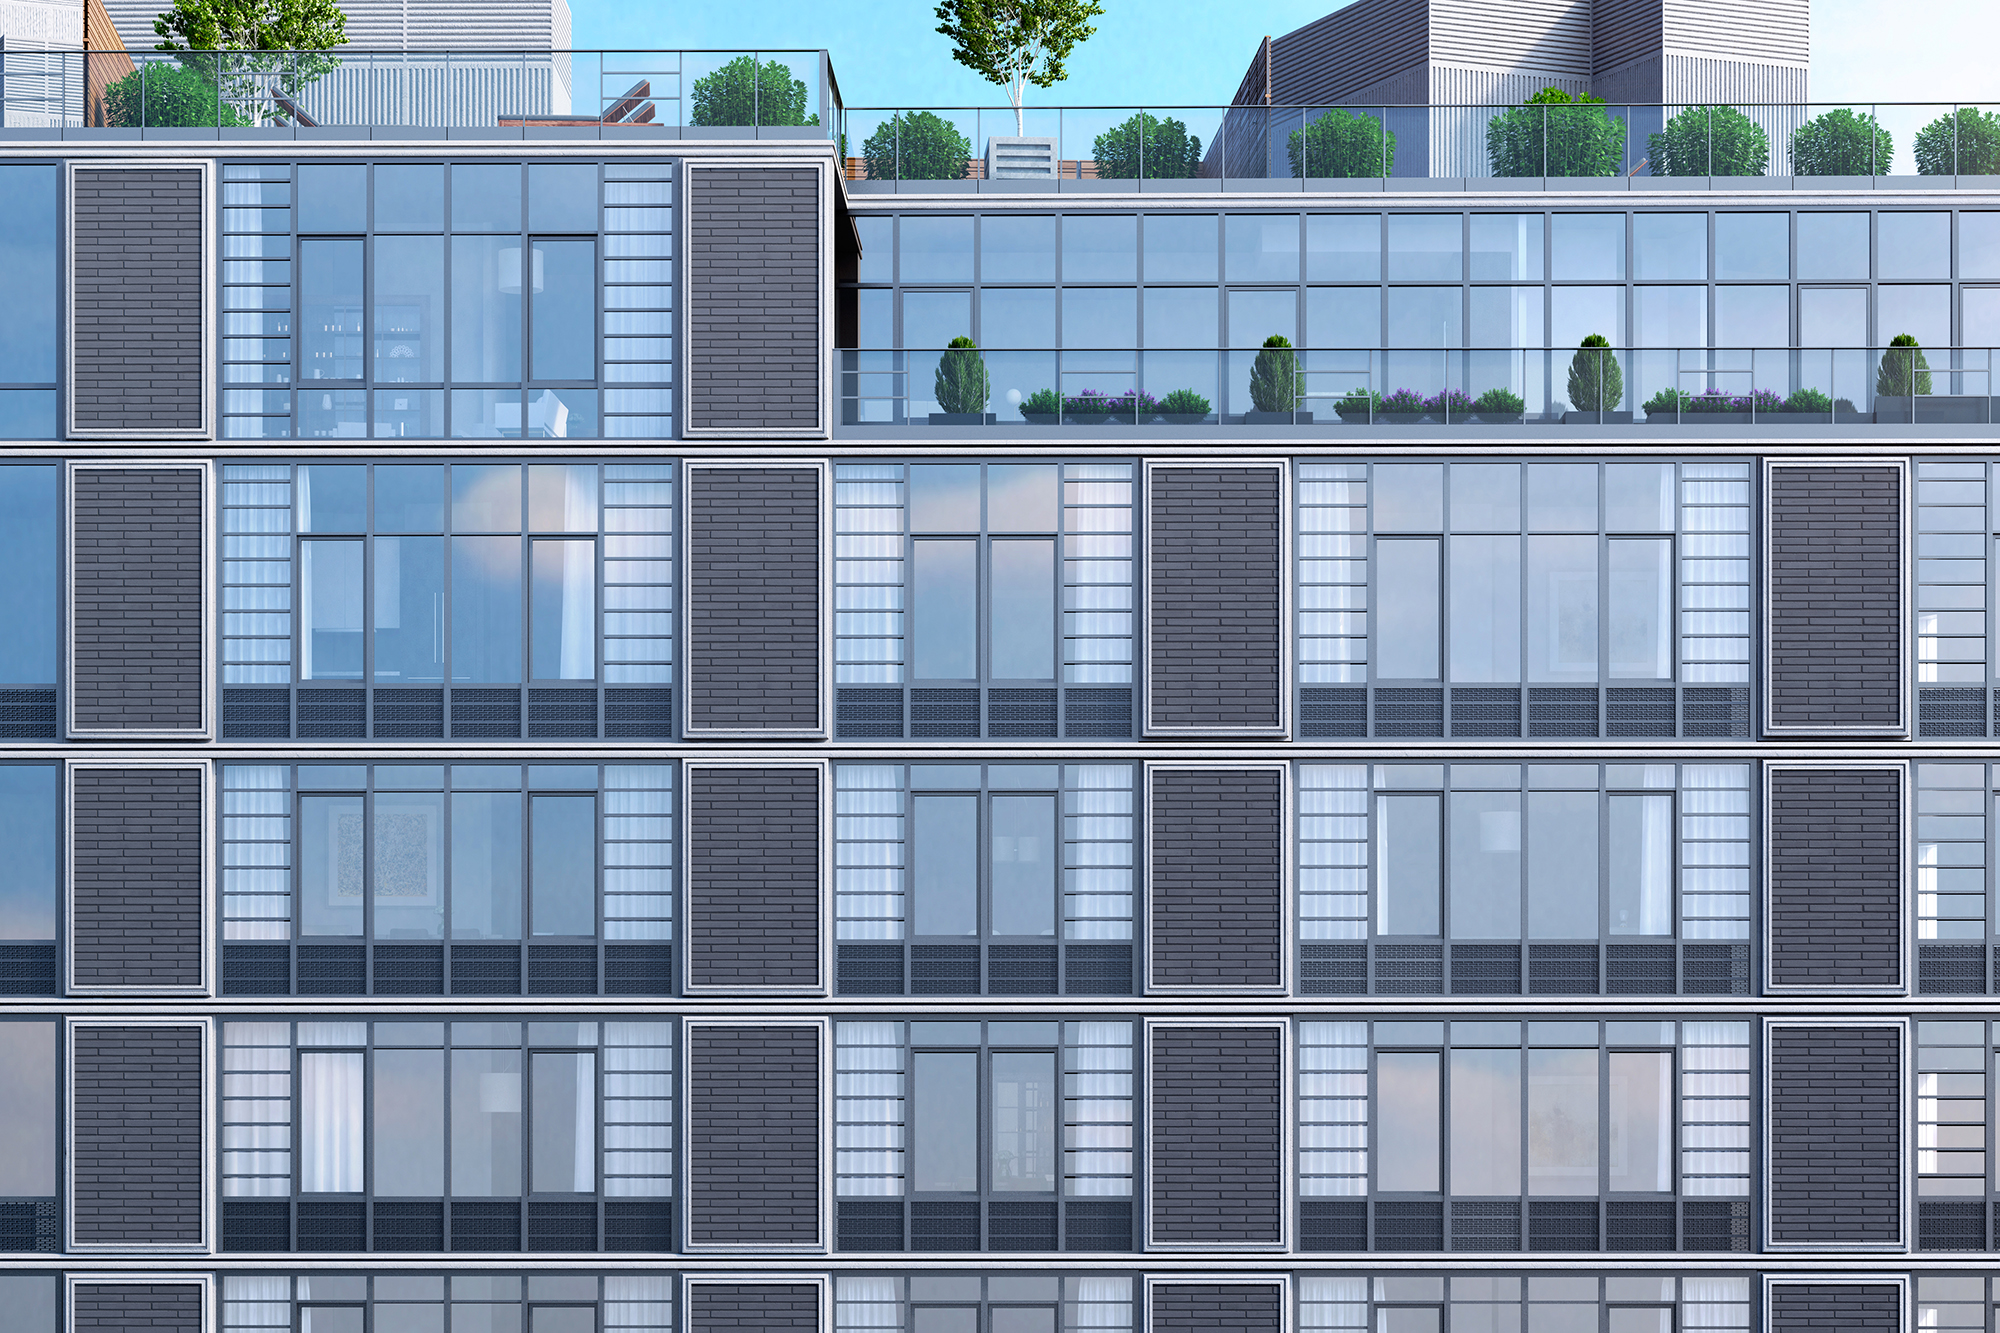 Rendering of facade detail at Waverly Brooklyn at 500 Waverly Avenue. Credit: Millarc